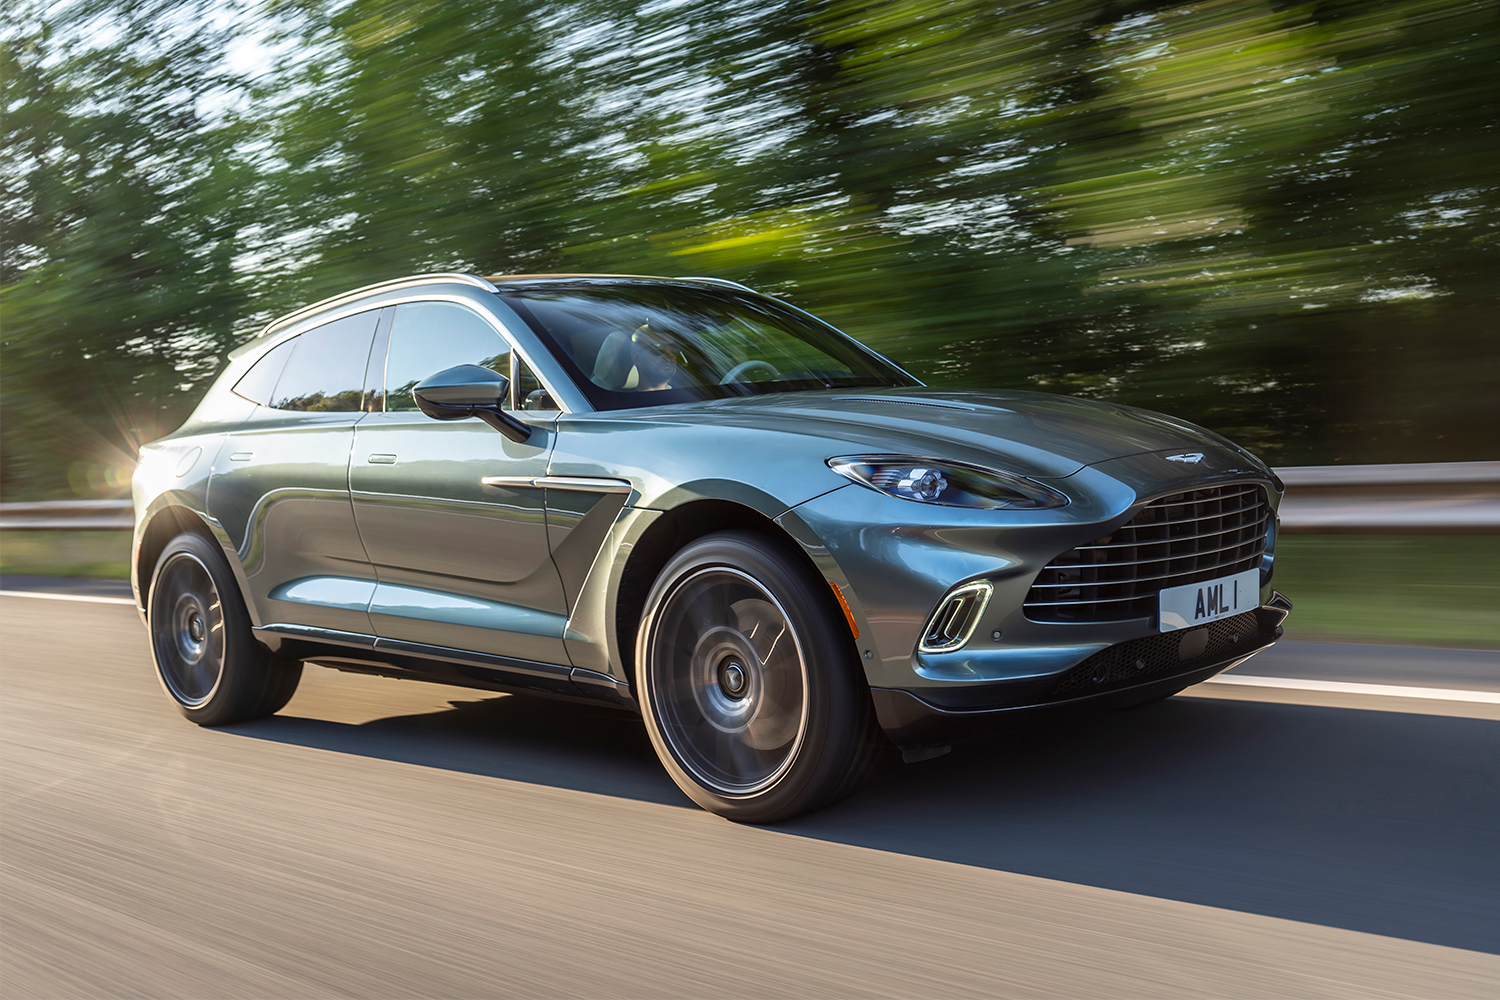 2021 Aston Martin DBX in green driving down the road